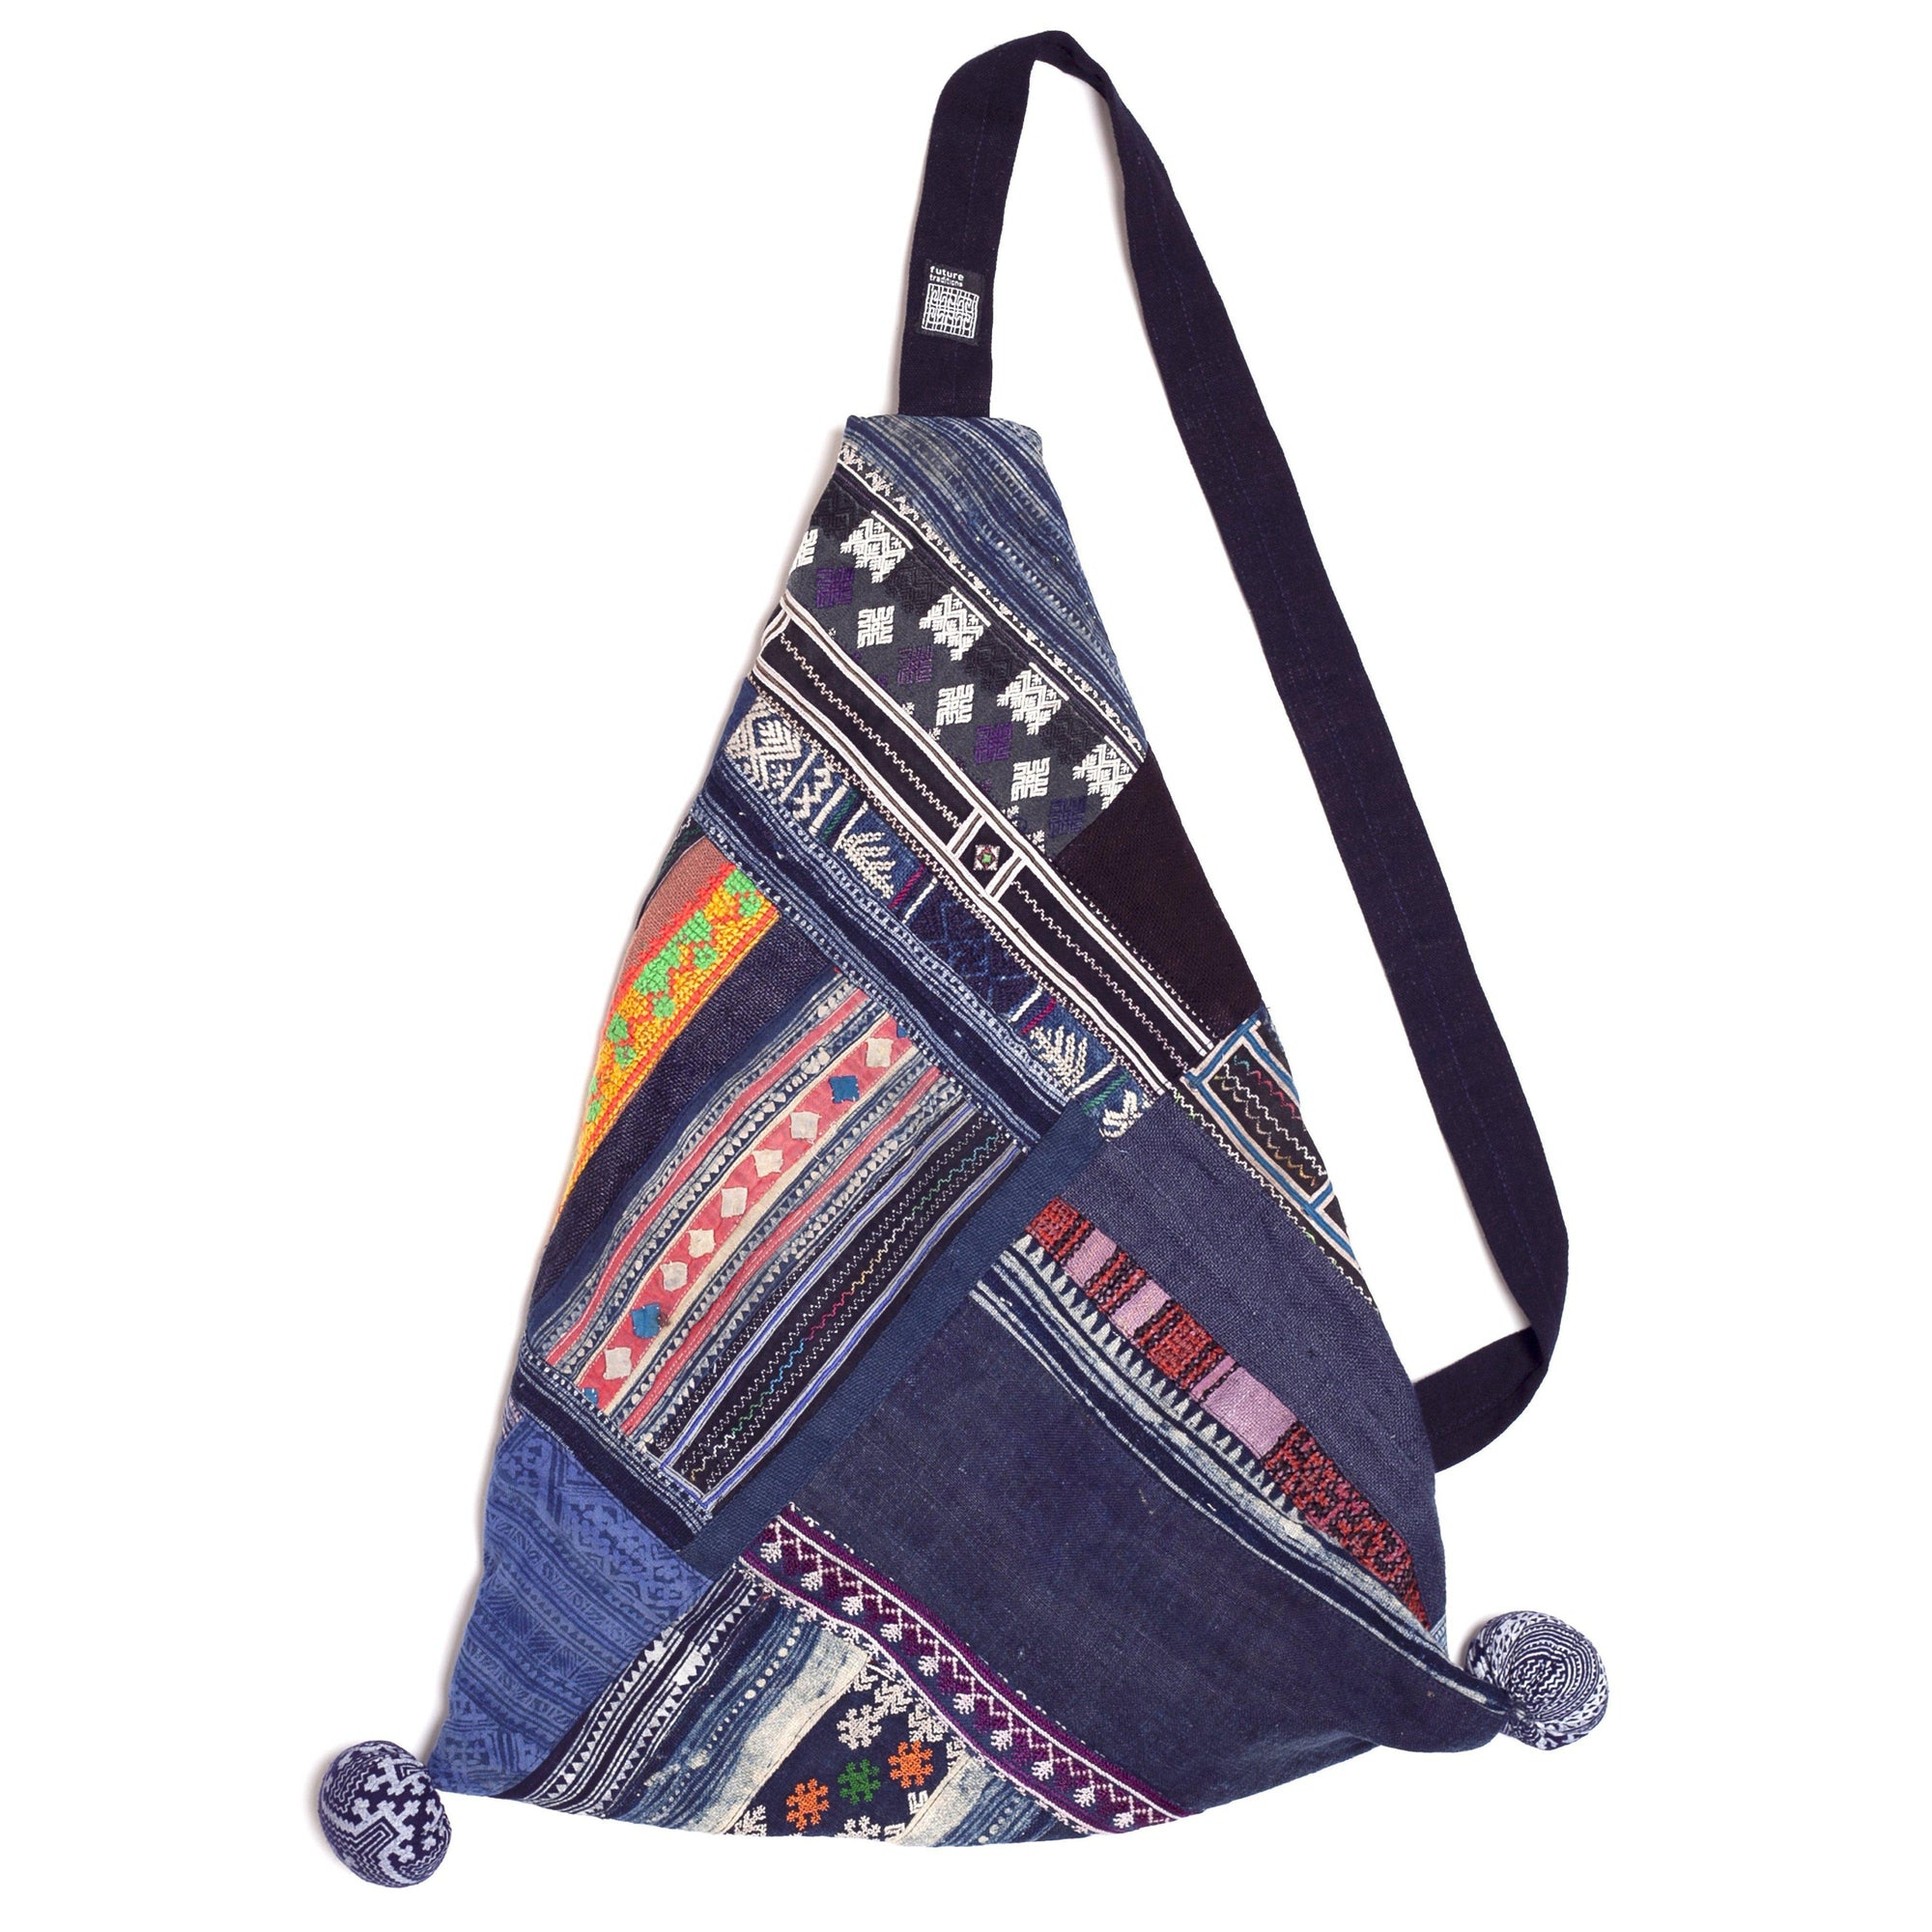 Handwoven Blue White and Orange Slouch Bag made from Vintage Textiles